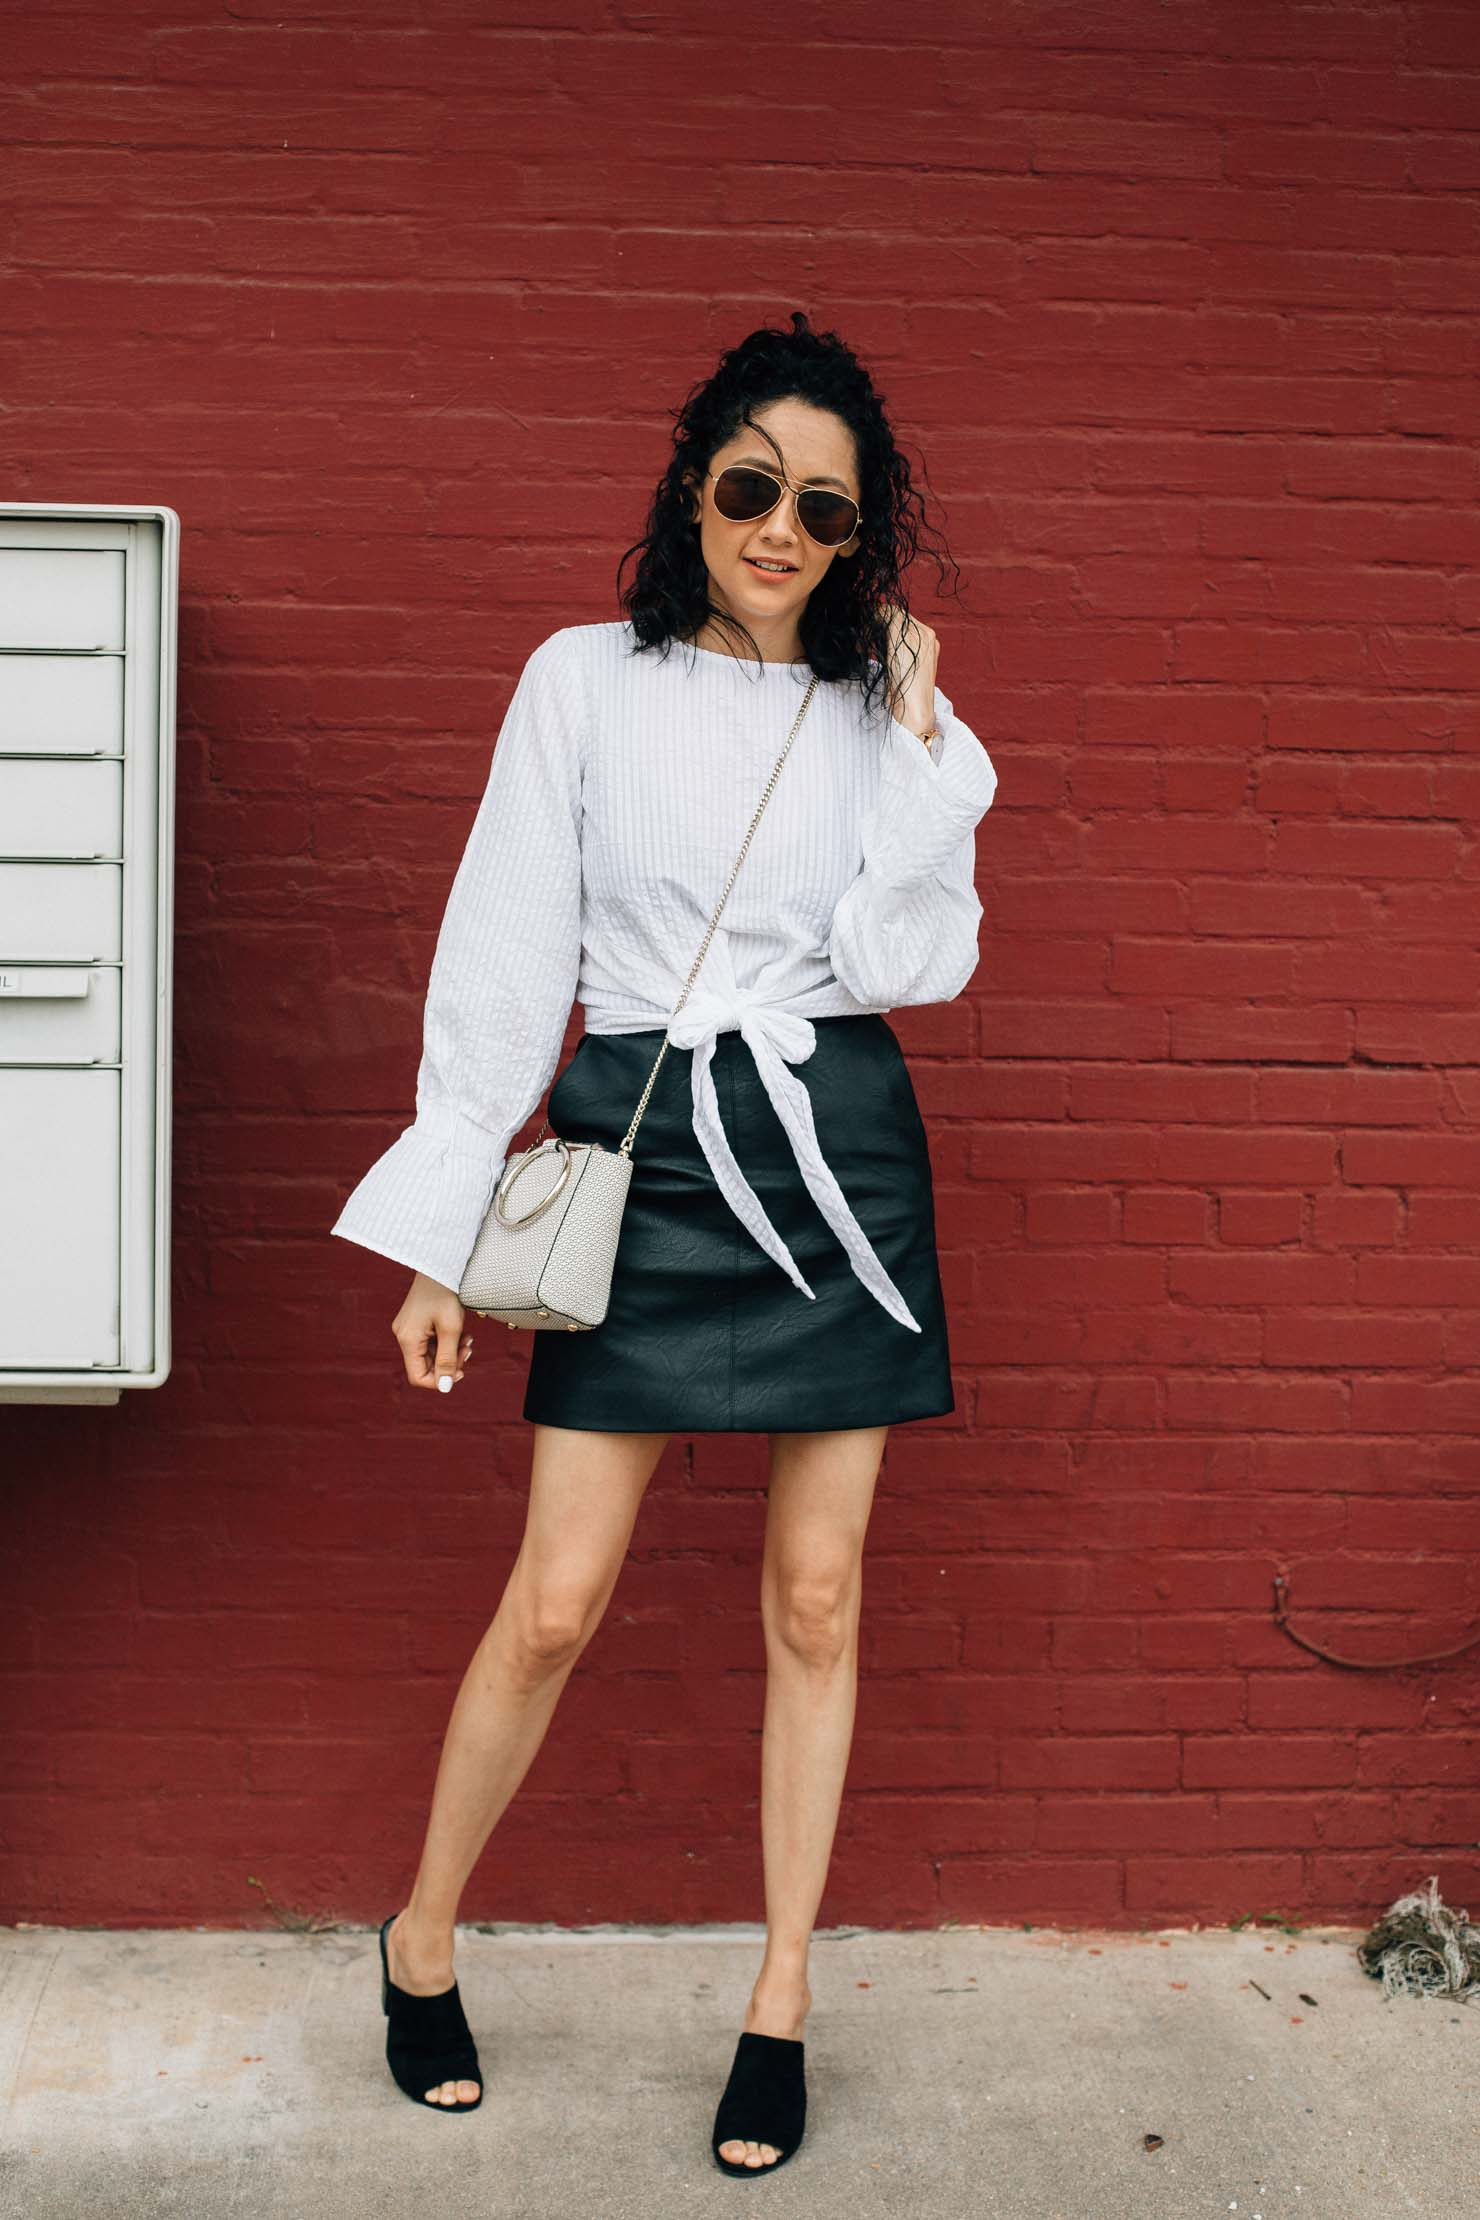 Houston based fashion blogger wearing H&M front tie shirt with leather mini skirt and black mules for a chic streetwear look